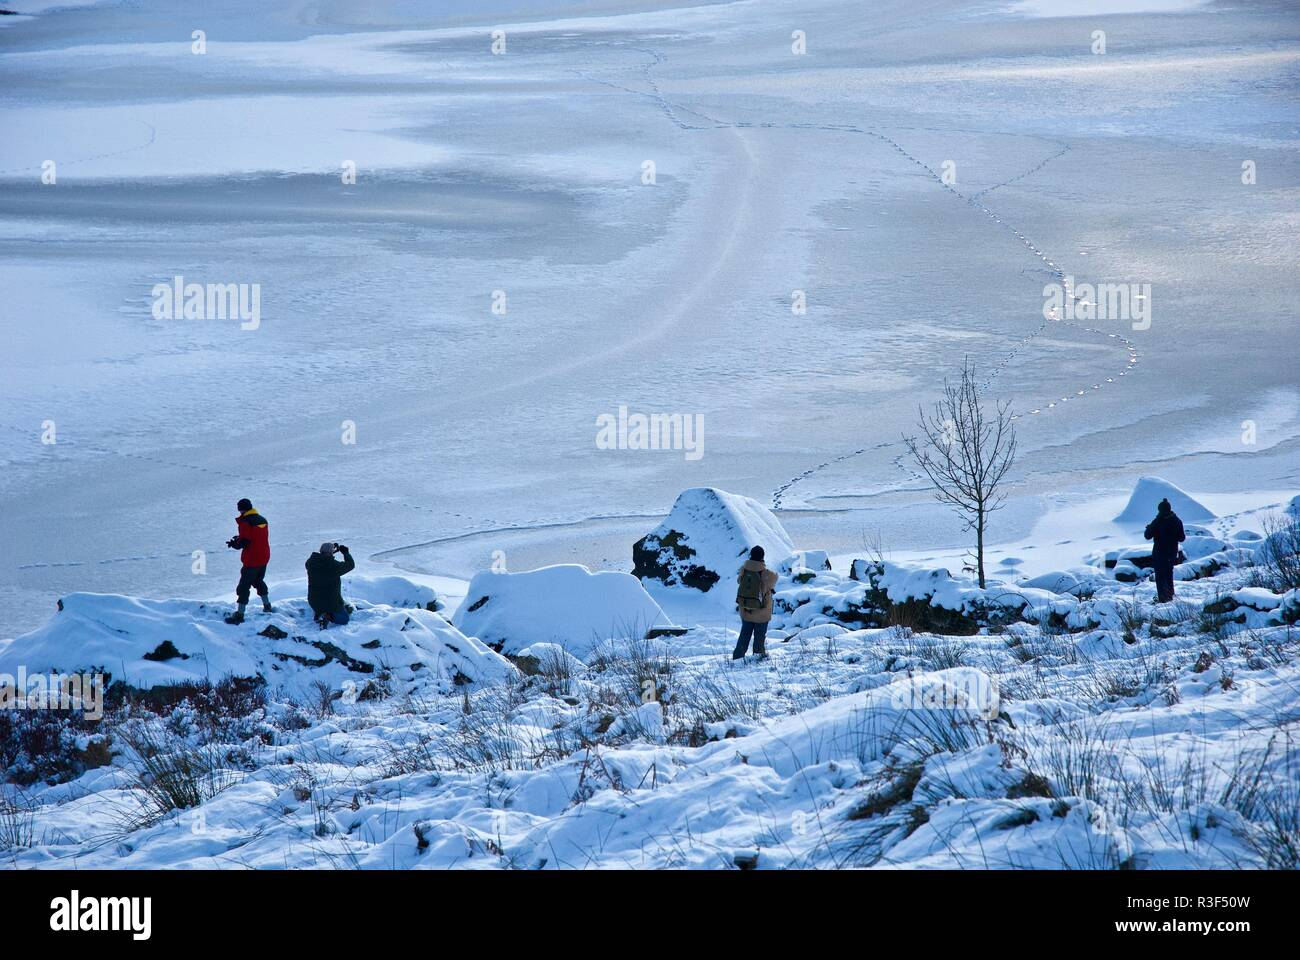 Walkers stop to photograph a frozen lake in a Winter landscape, Capel Curig, Snowdonia, North Wales, UK - Stock Image